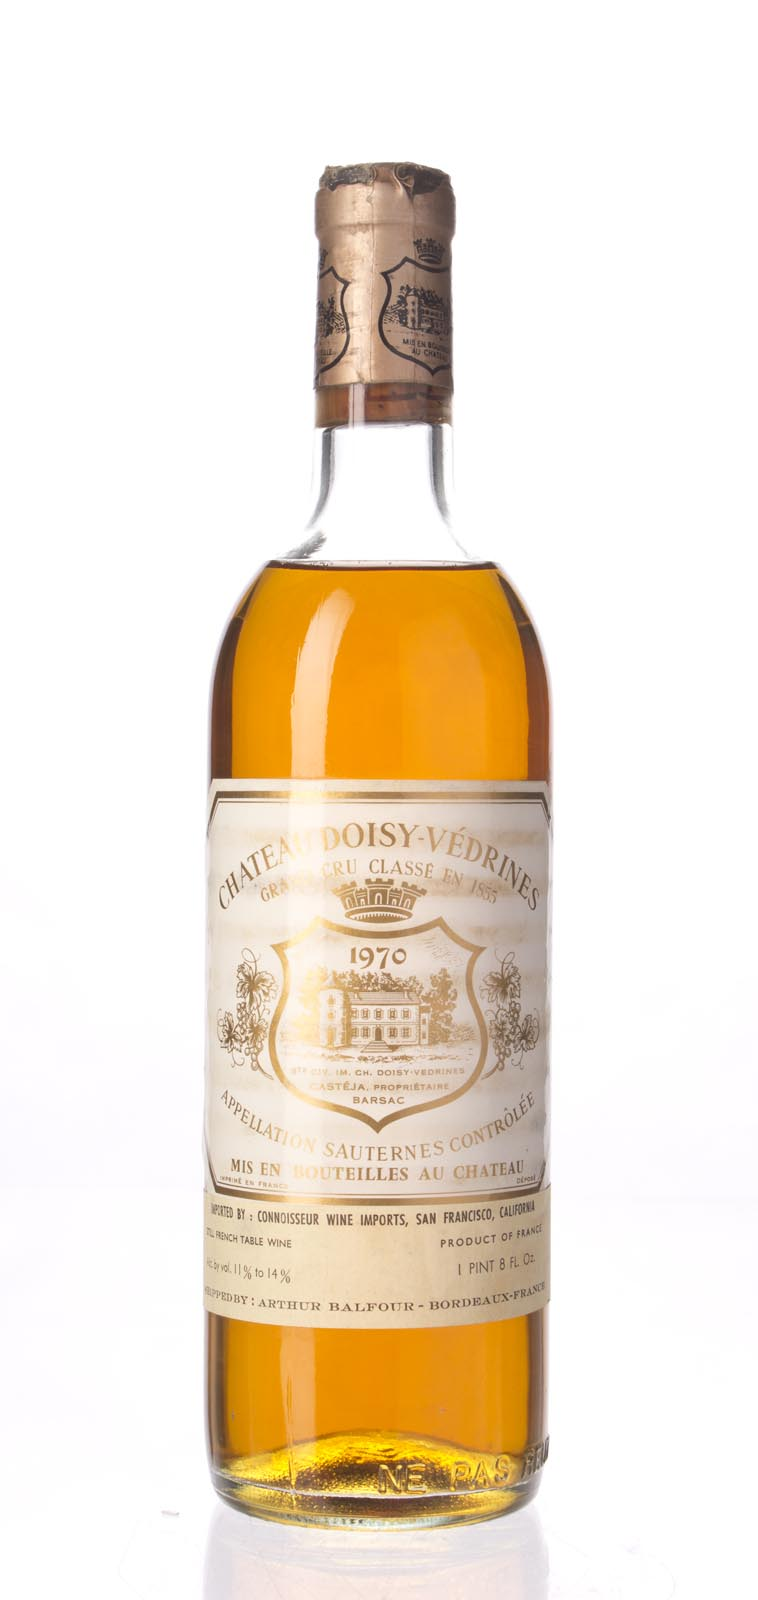 Doisy Vedrines 1970, 750ml () from The BPW - Merchants of rare and fine wines.